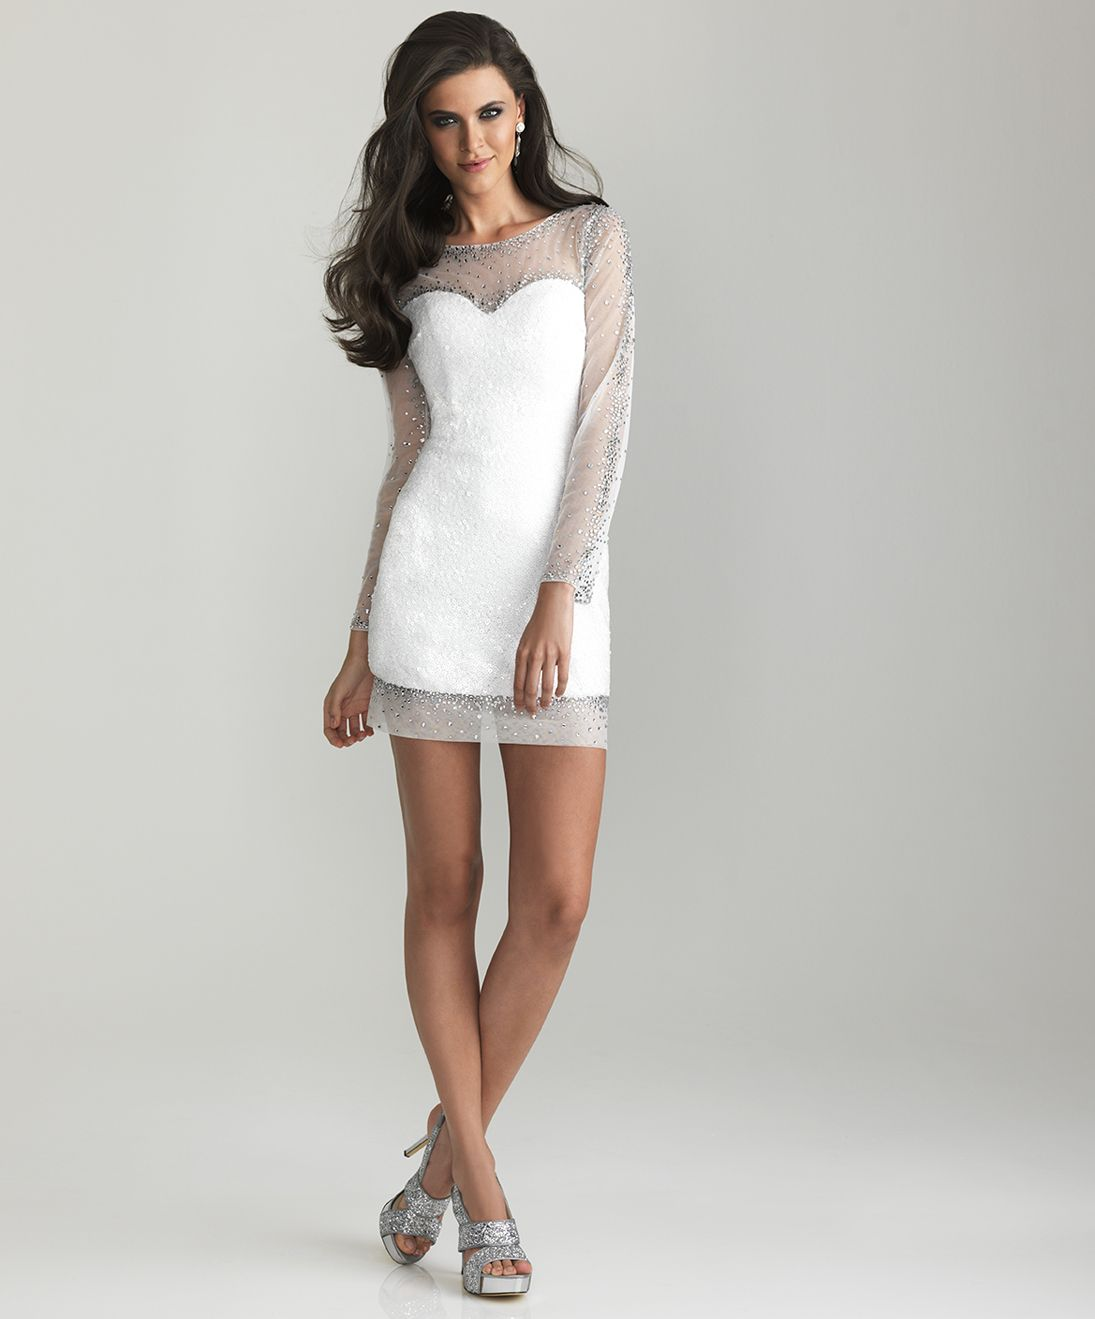 Buy Short white dresses with long sleeves pictures trends